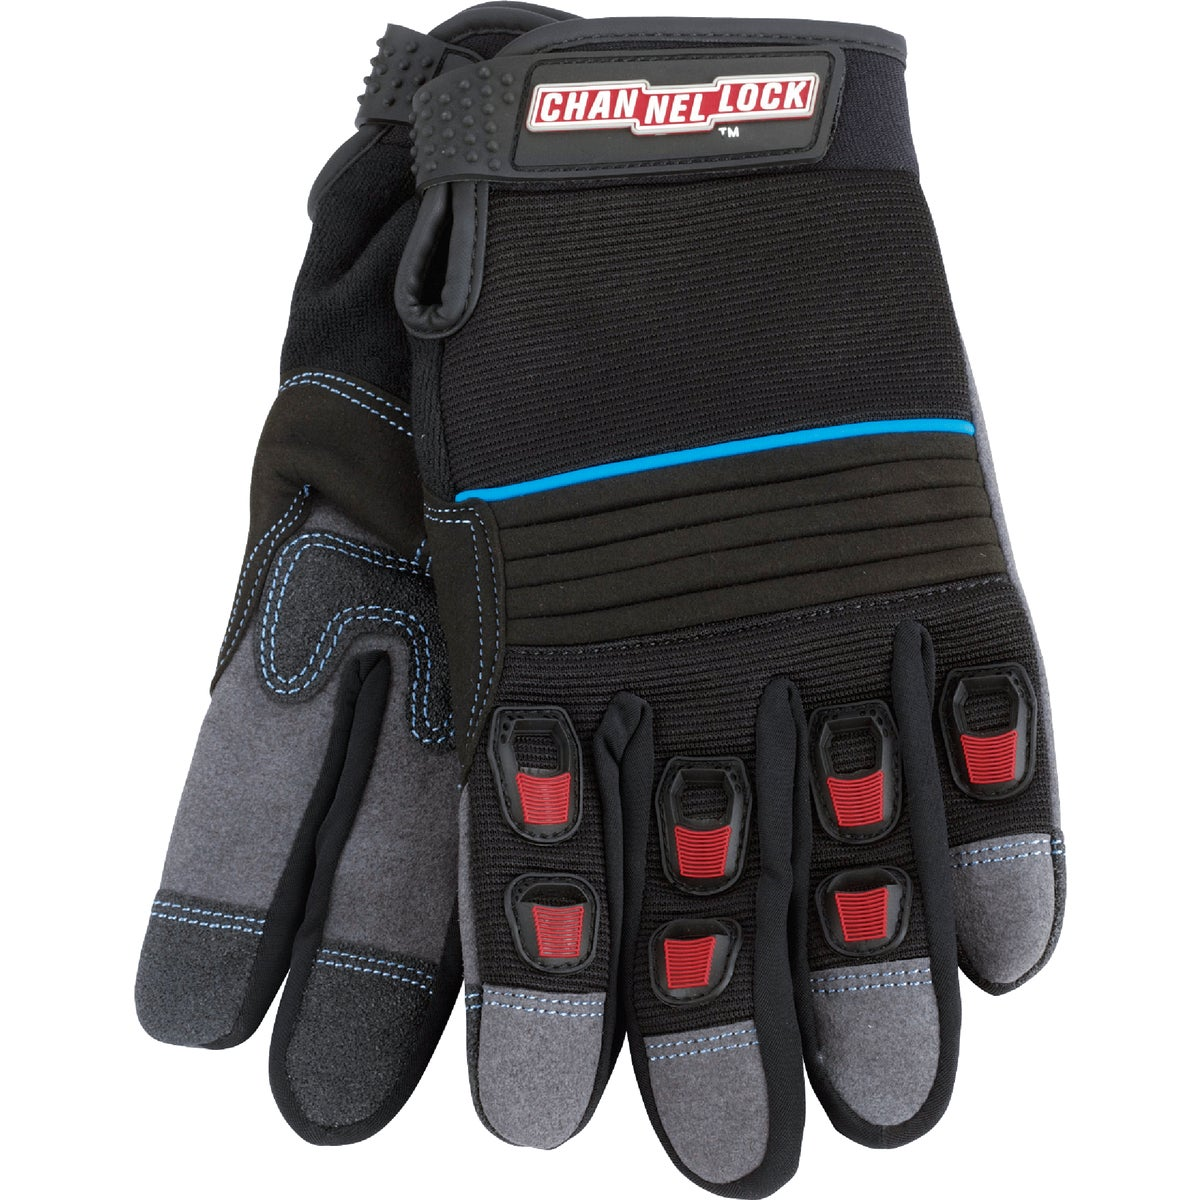 MED PRO HVY DUTY GLOVE - 760546 by Channellock®